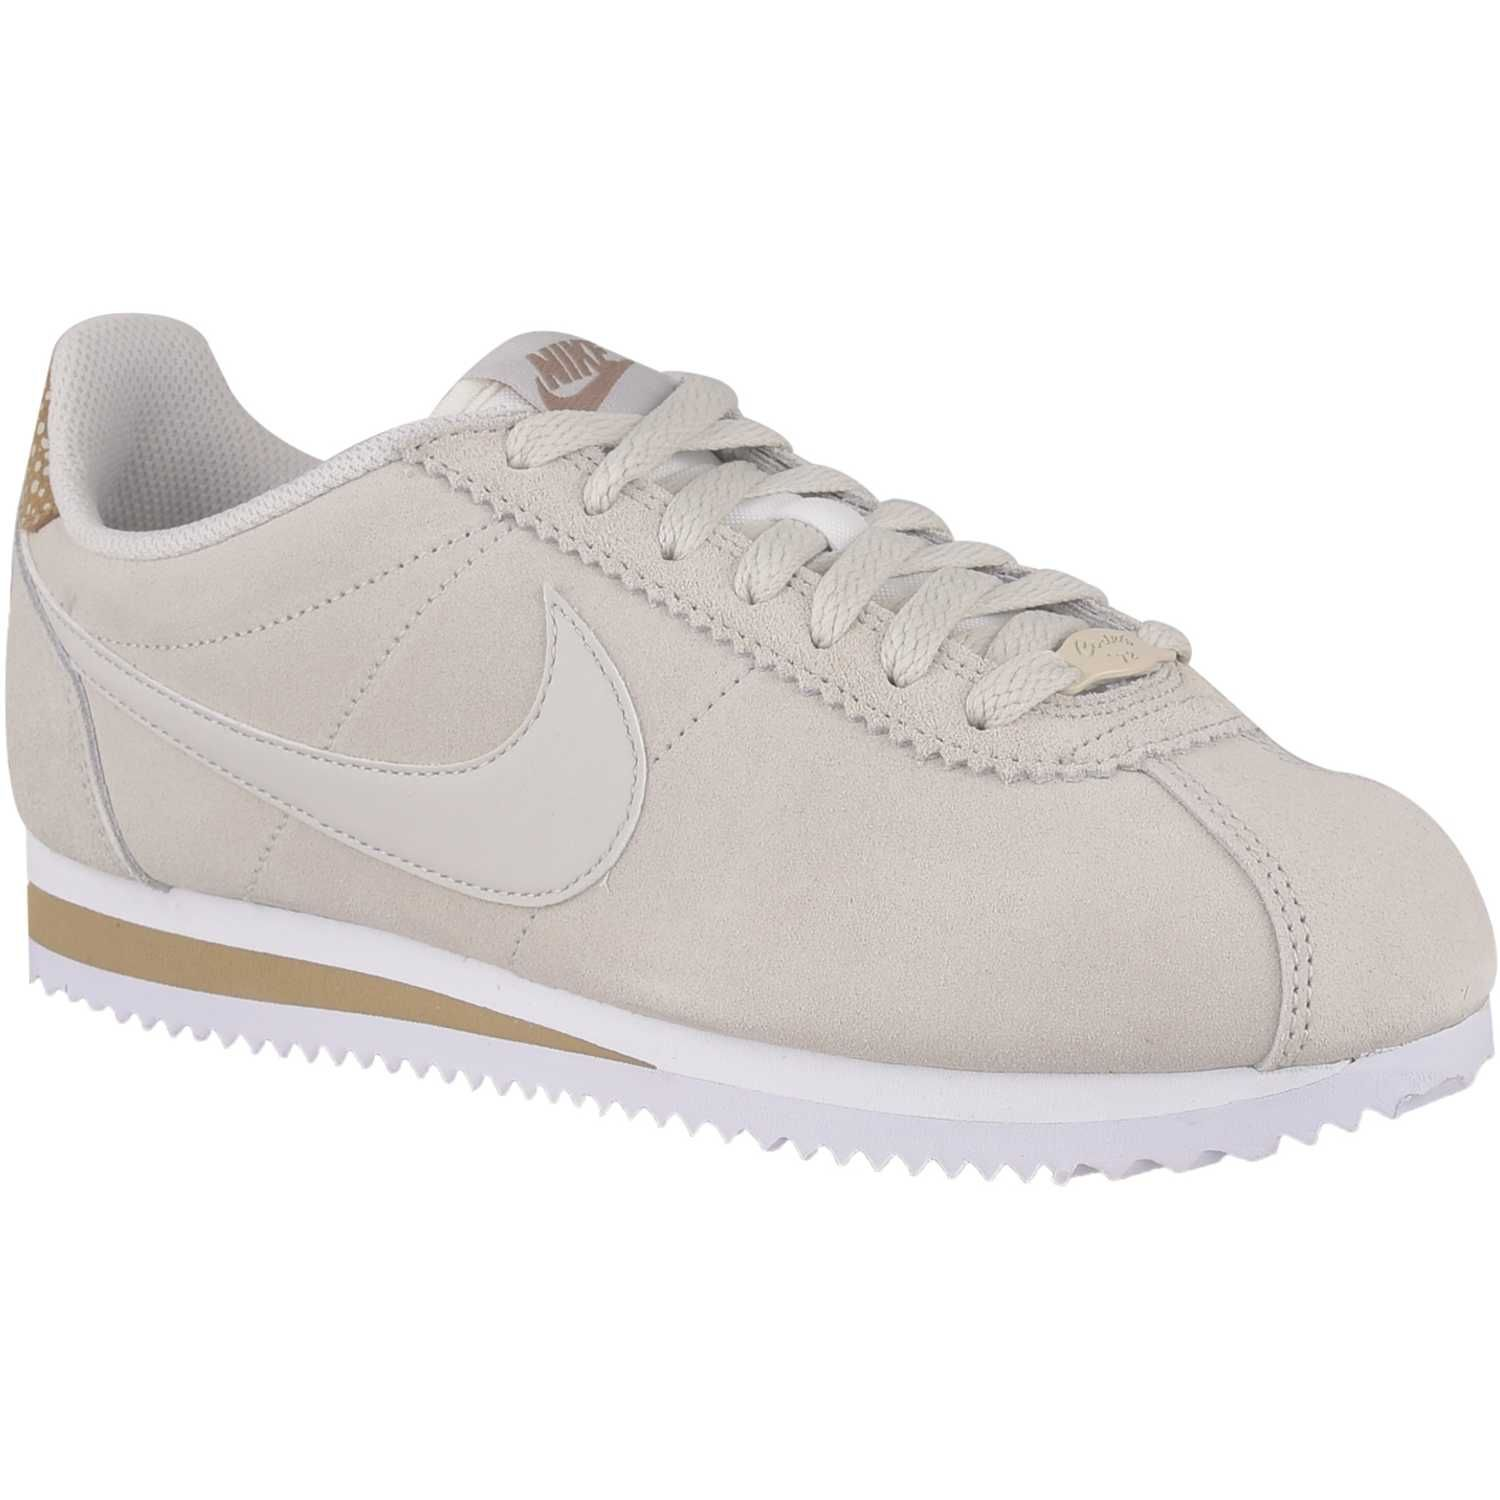 nike cortez grises mujer